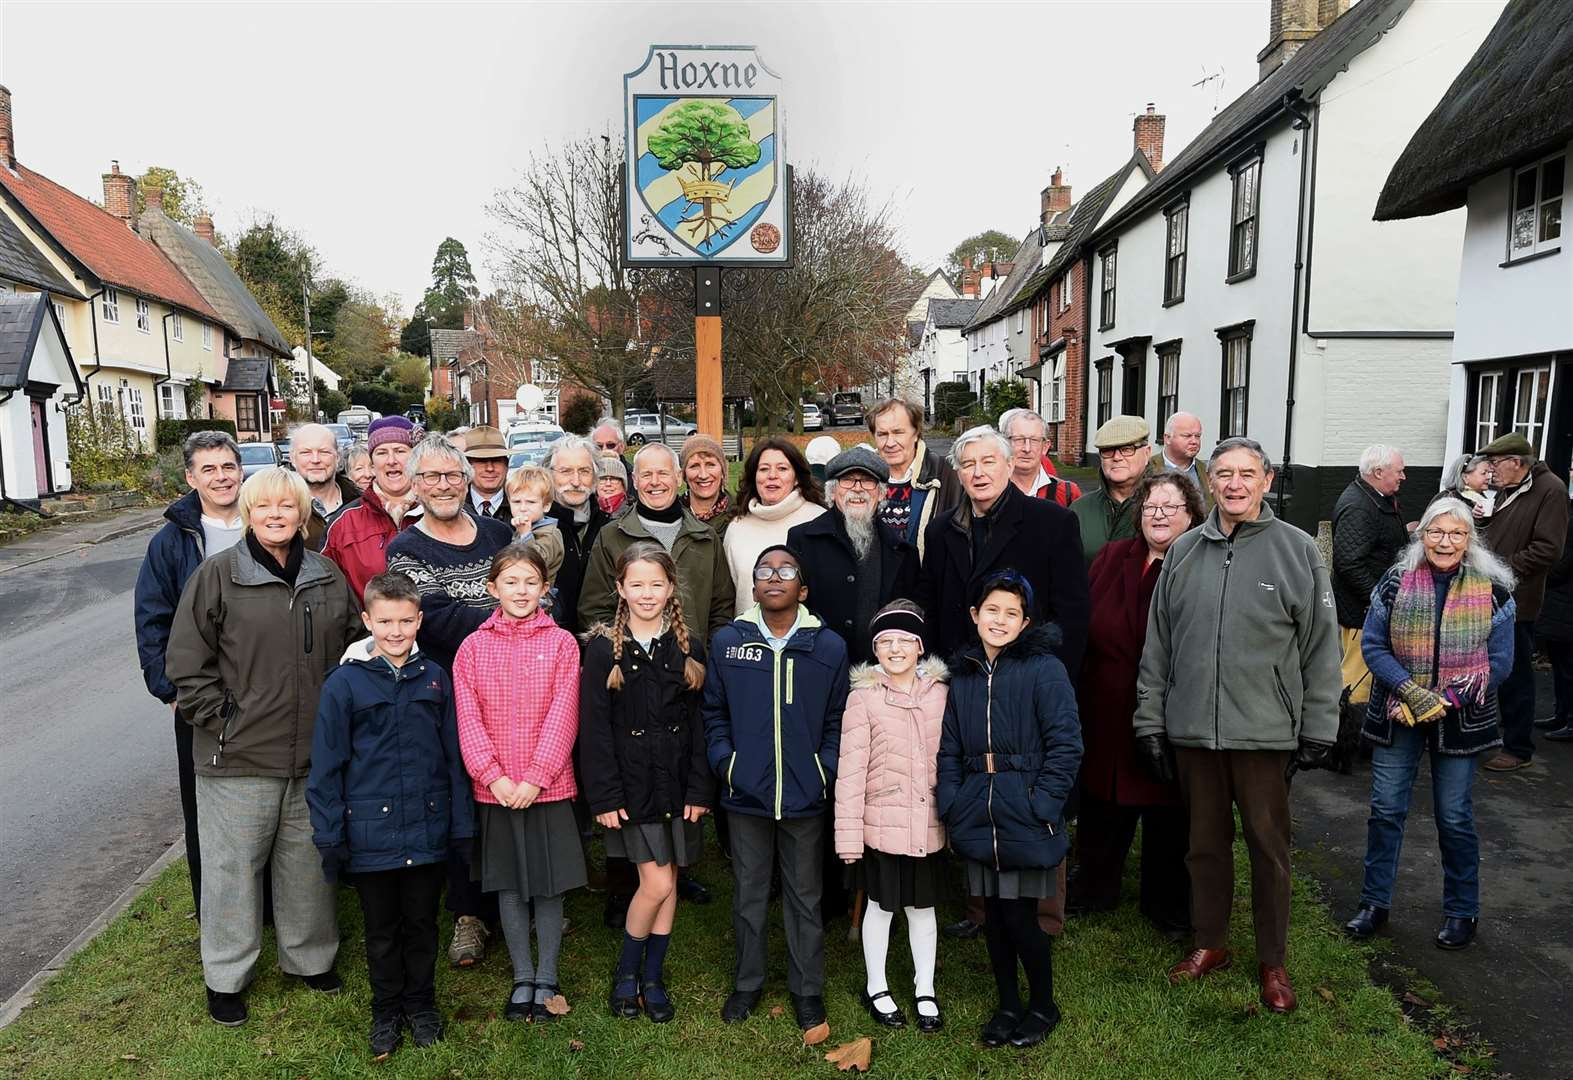 Proud moment for parishioners as village sign is unveiled